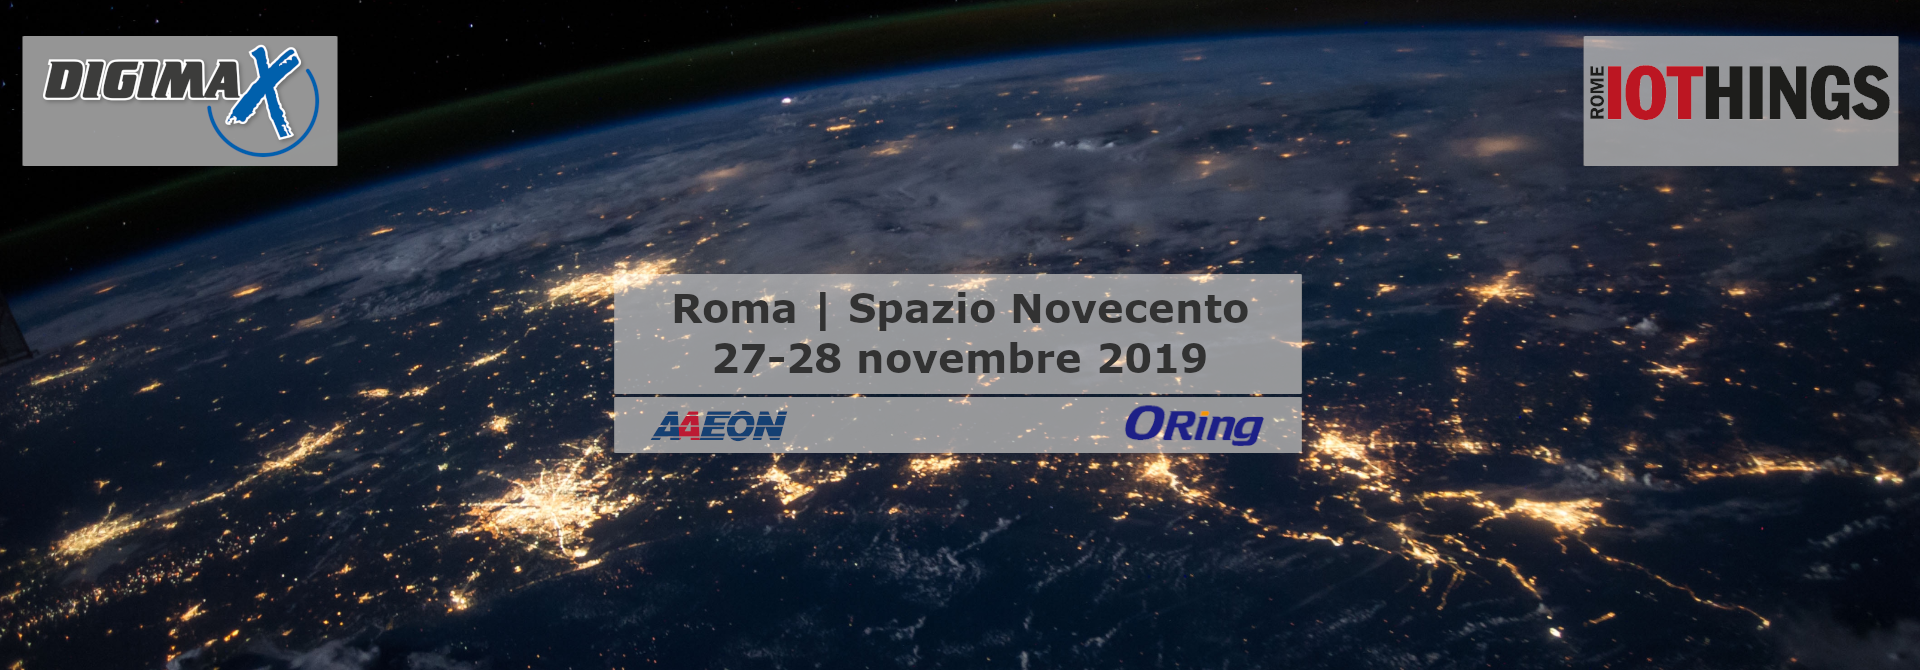 Evento - IoThings Roma 2019